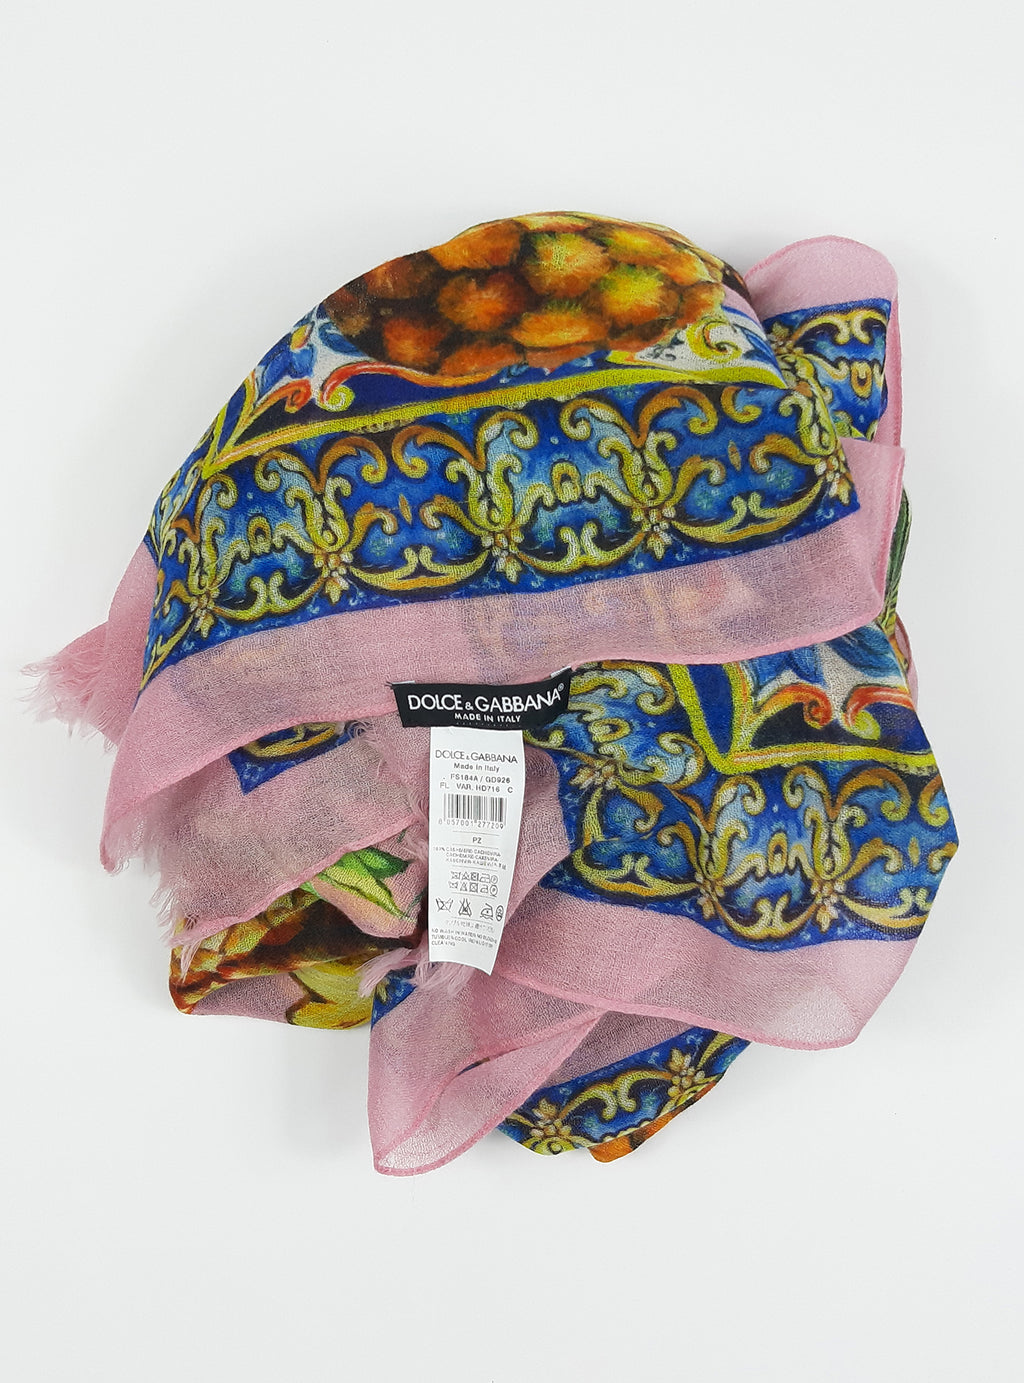 Dolce & Gabbana Pink Silk Scarf and Pineapples